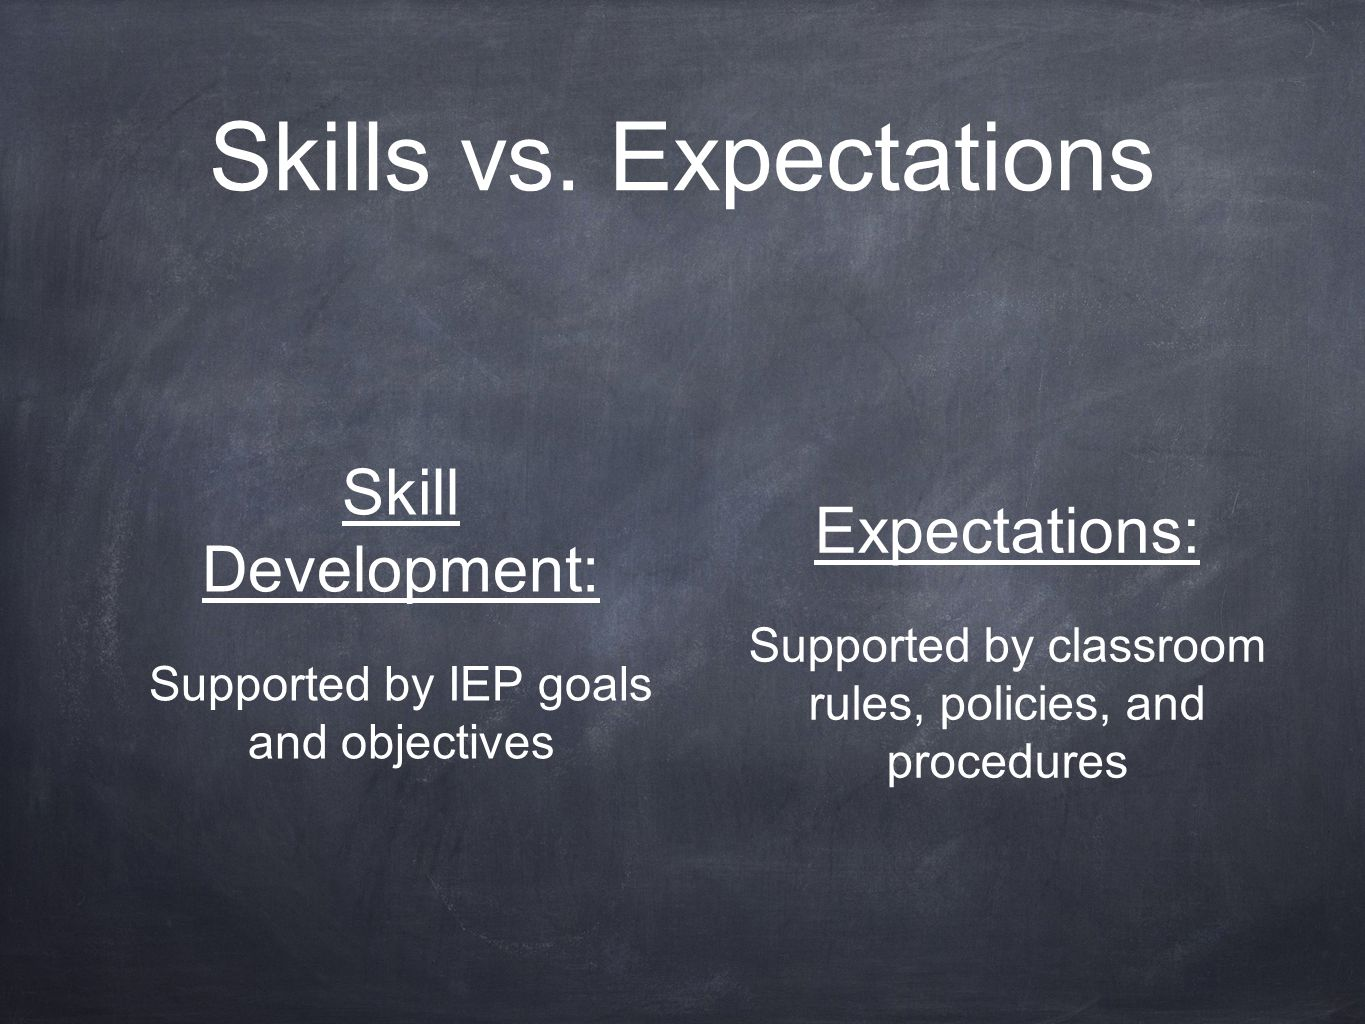 Skills vs. Expectations Skill Development: Supported by IEP goals and objectives Expectations: Supported by classroom rules, policies, and procedures